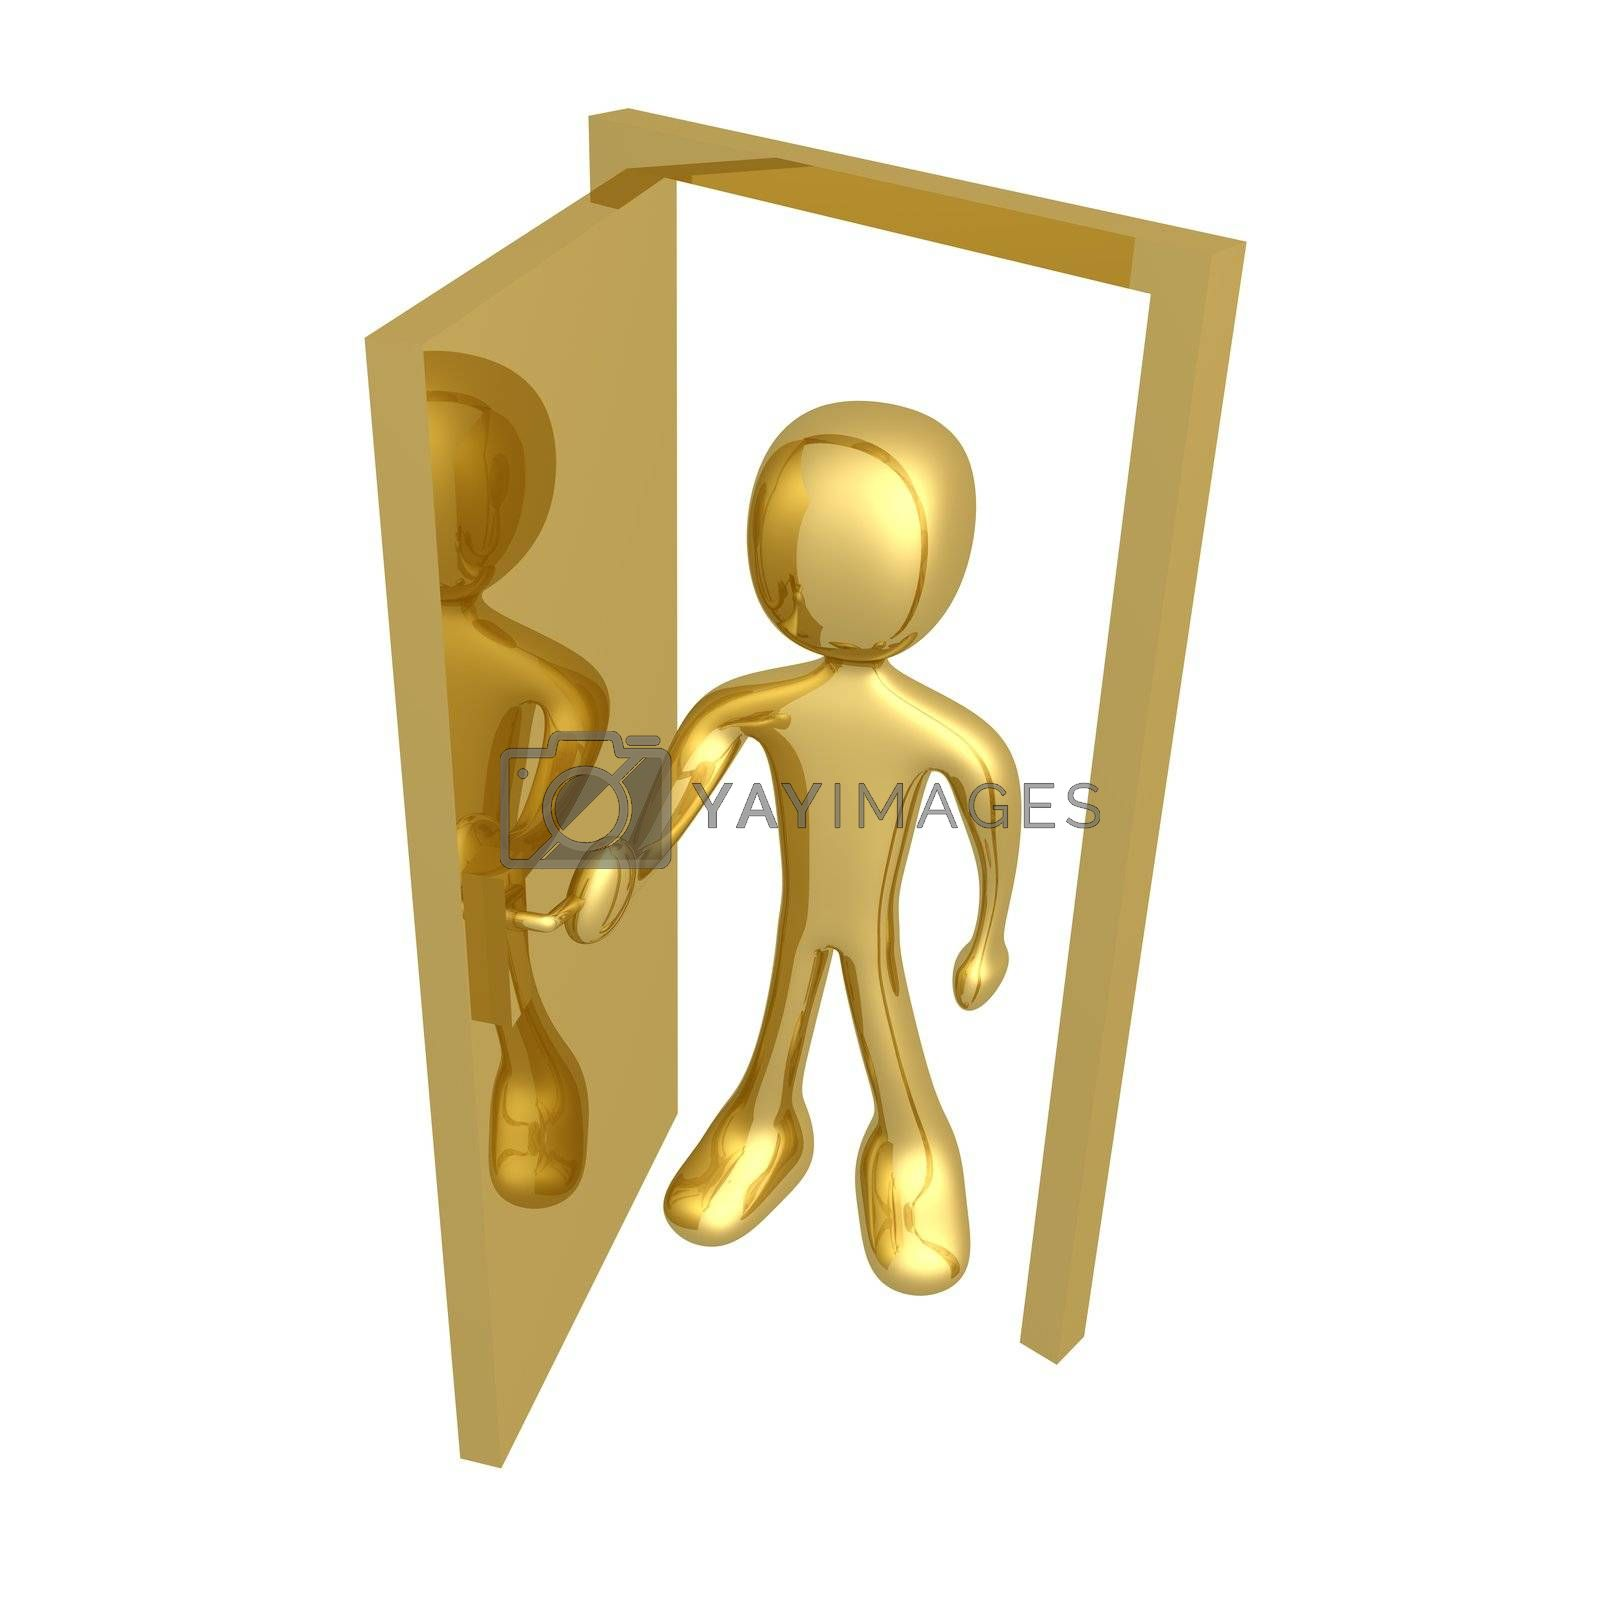 Royalty free image of Open the door by 3pod